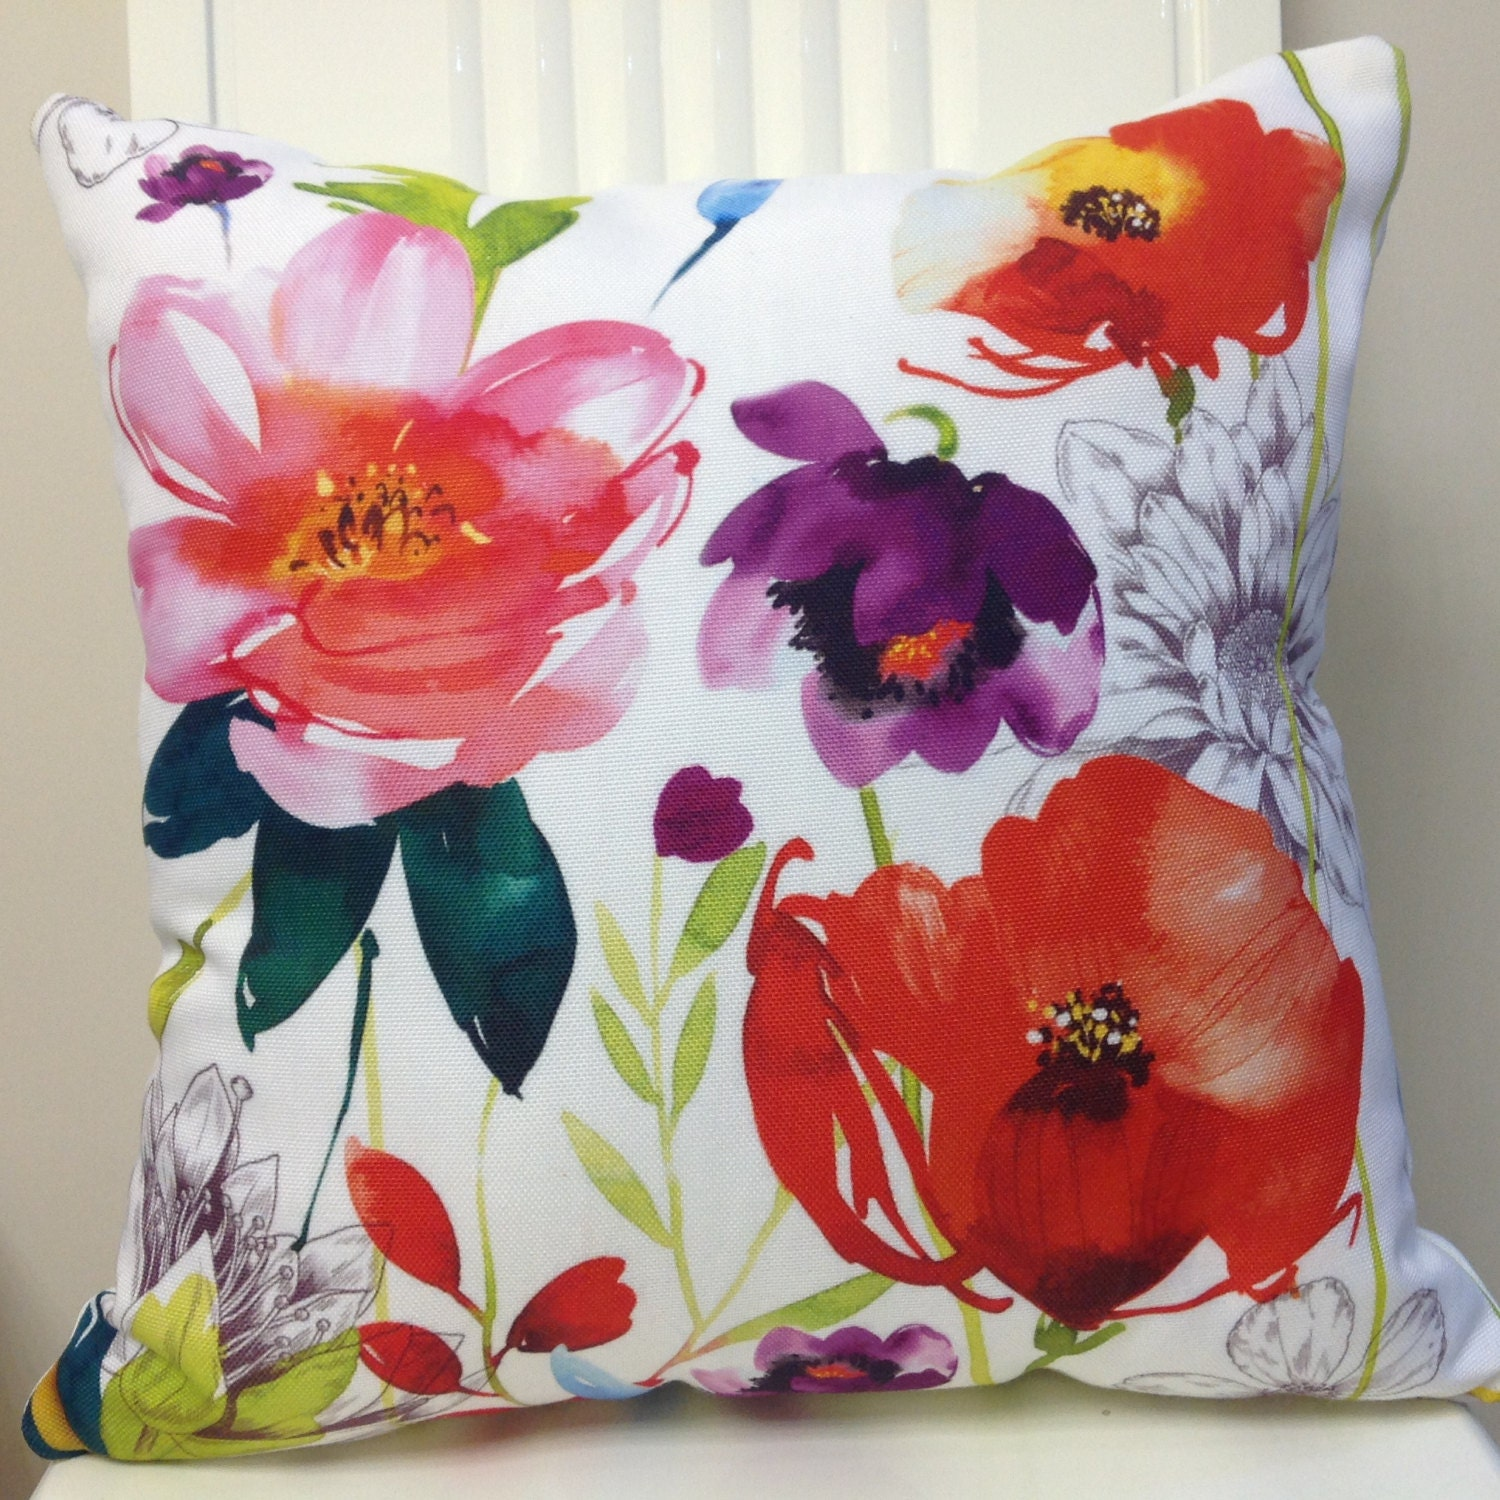 Throw Pillows For A Floral Couch : PILLOWS, PILLOW COVERS, WATERCOLOR FLORAL PILLOW COVER, DECORATIVE THROW PILLOWS, THROW PILLOWS ...